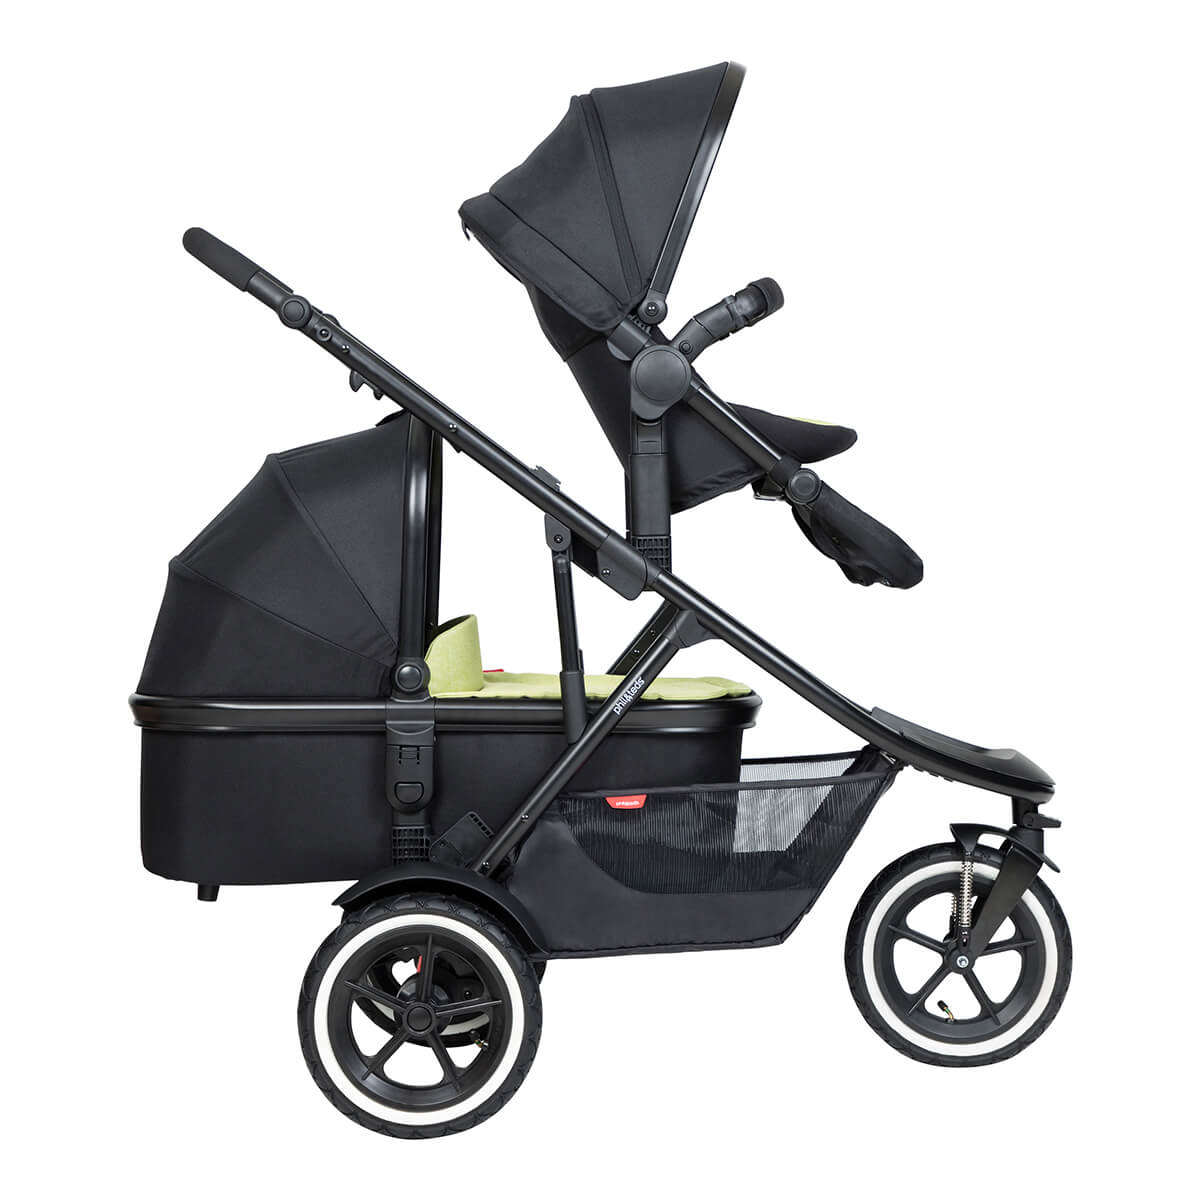 https://cdn.accentuate.io/4546157871209/19119322726505/philteds-sport-buggy-with-double-kit-extended-clip-and-snug-carrycot-side-view-v1625778311027.jpg?1200x1200